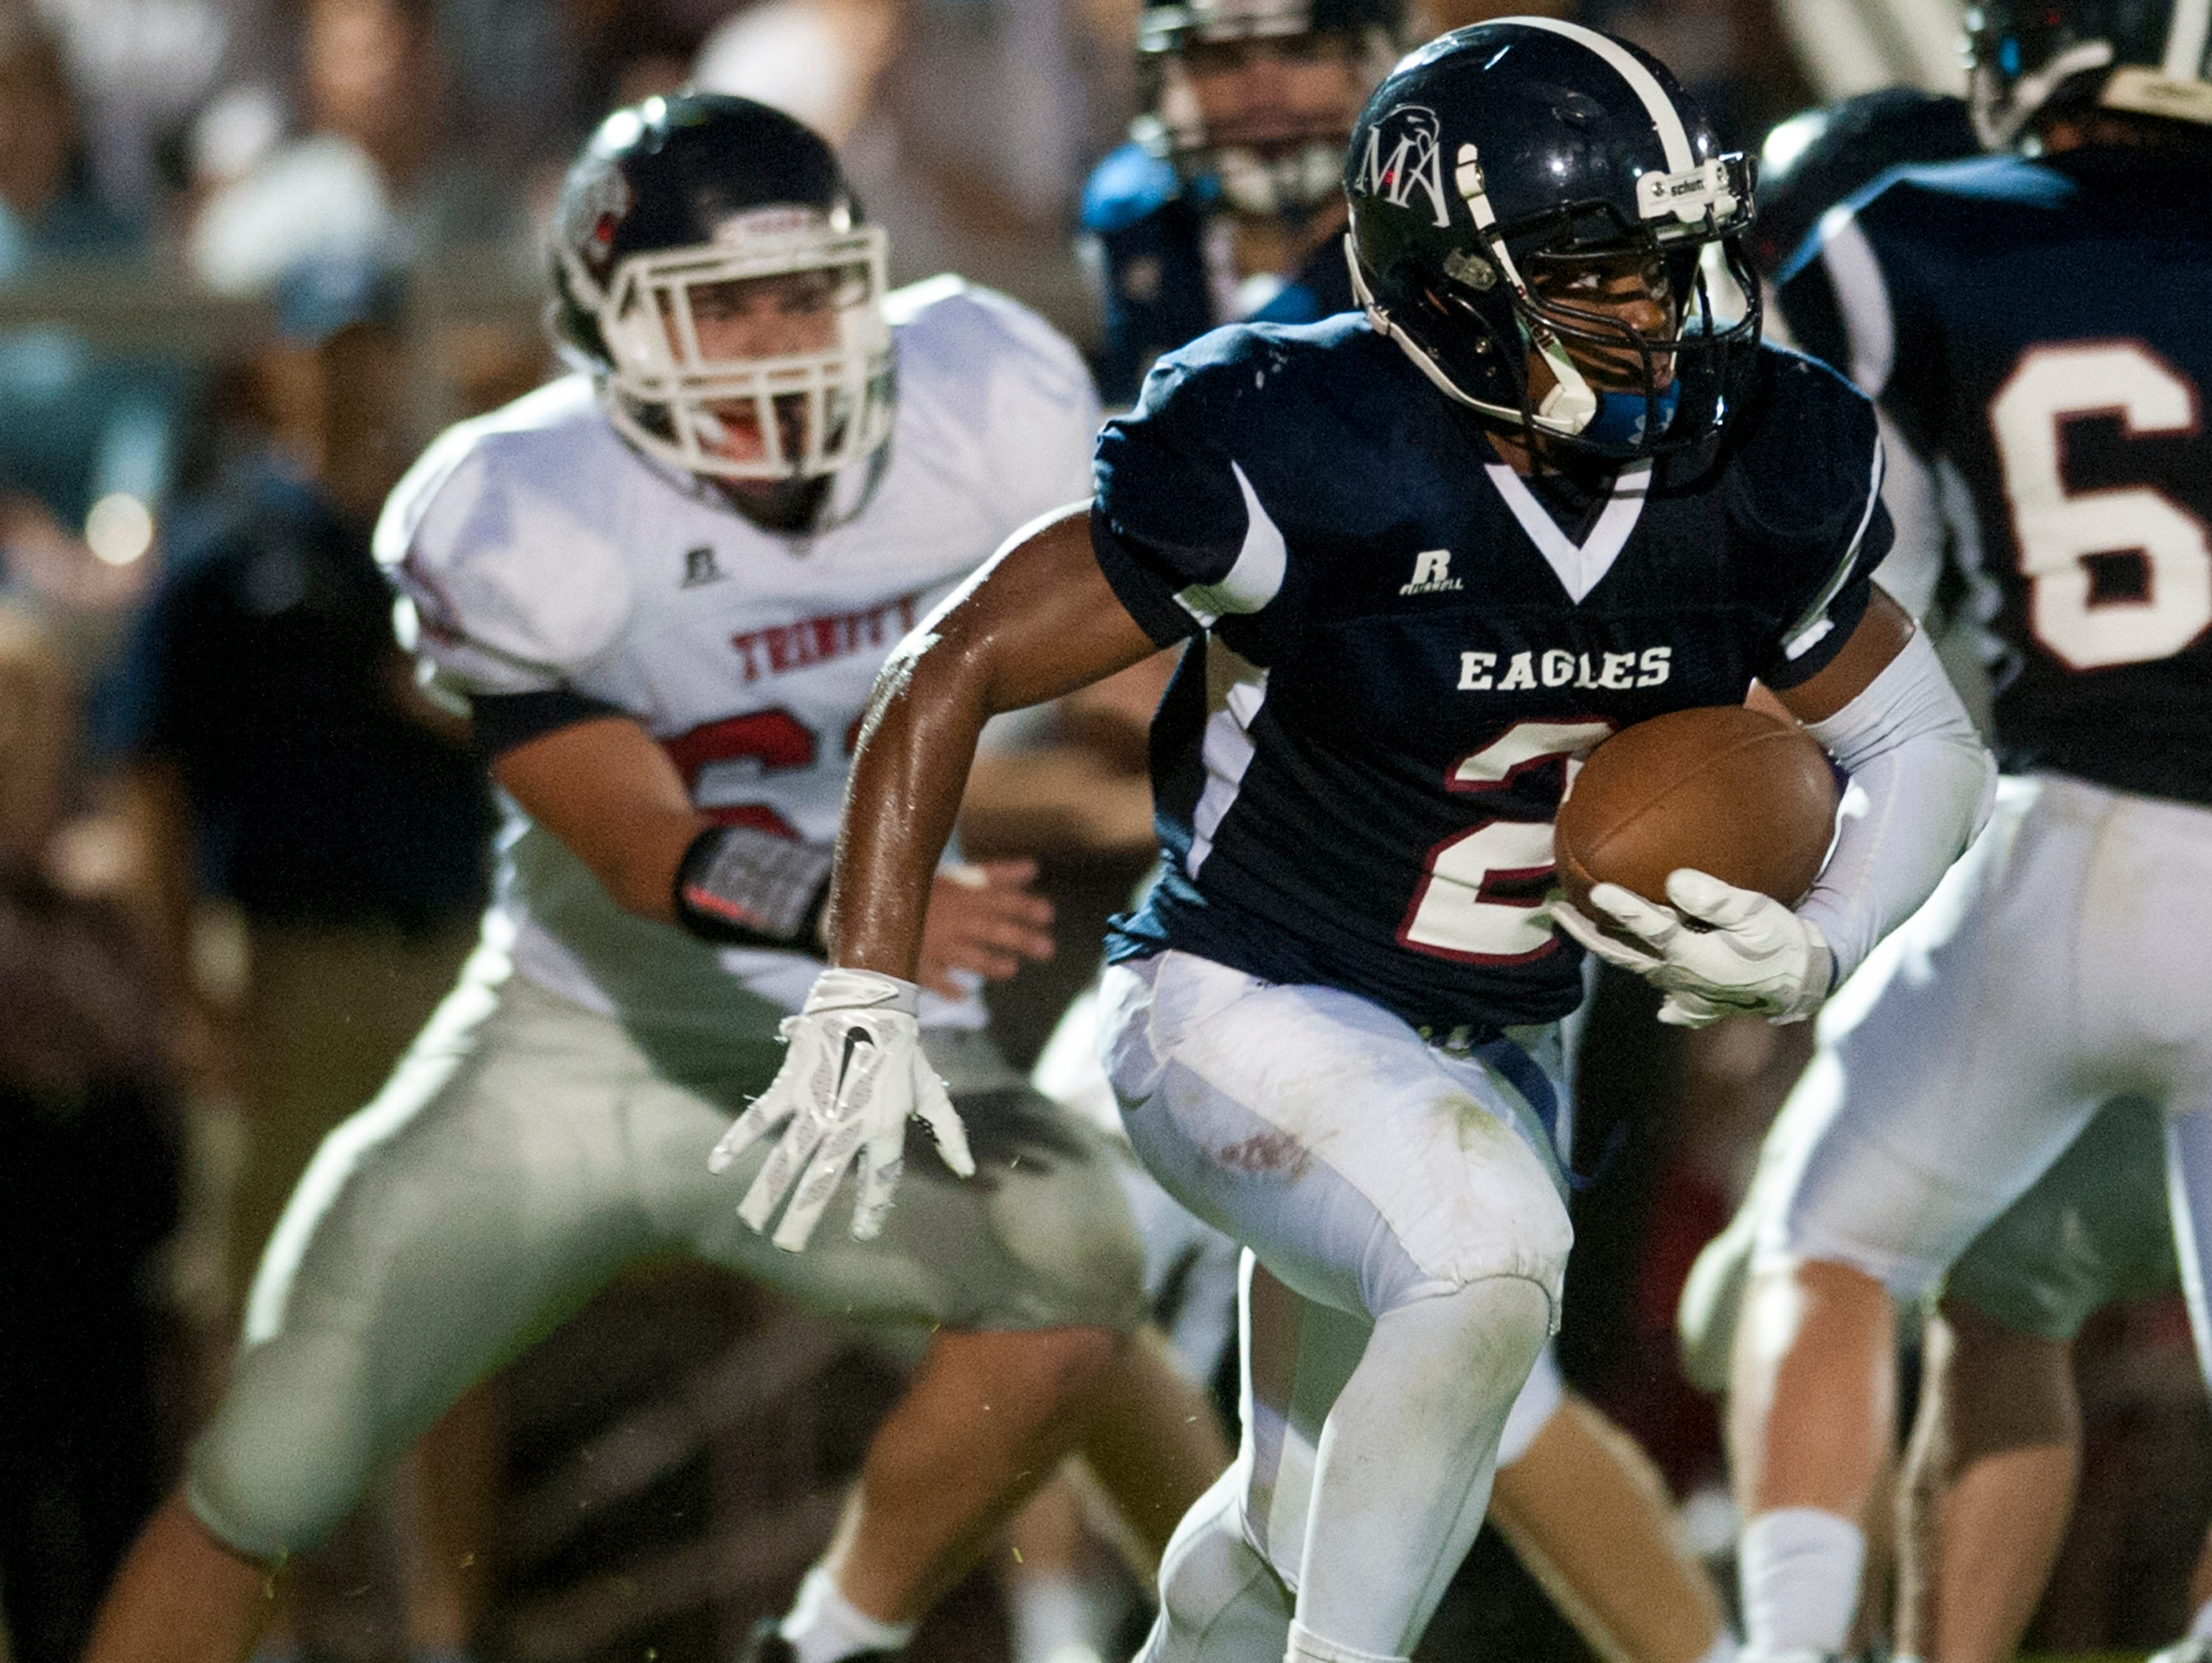 Montgomery Academy's Nelson Whyte (2) carries against Trinity at the Montgomery Academy campus in Montgomery Al. on Friday September 25, 2015.